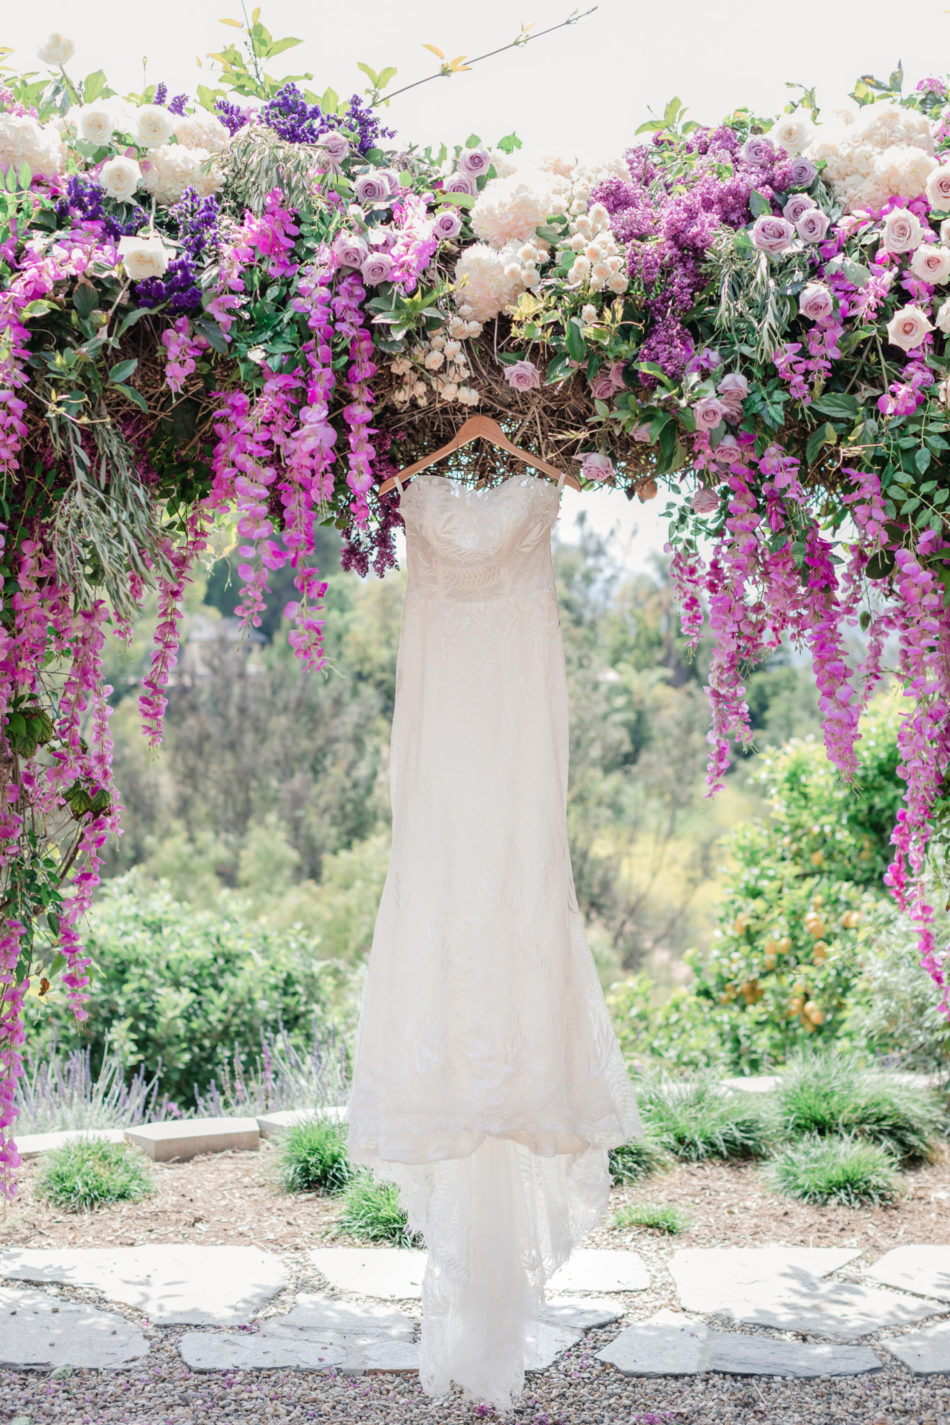 purple floral arch, purple floral-filled chuppah, wedding dress, floral design, florist, wedding florist, wedding flowers, orange county weddings, orange county wedding florist, orange county florist, orange county floral design, flowers by cina